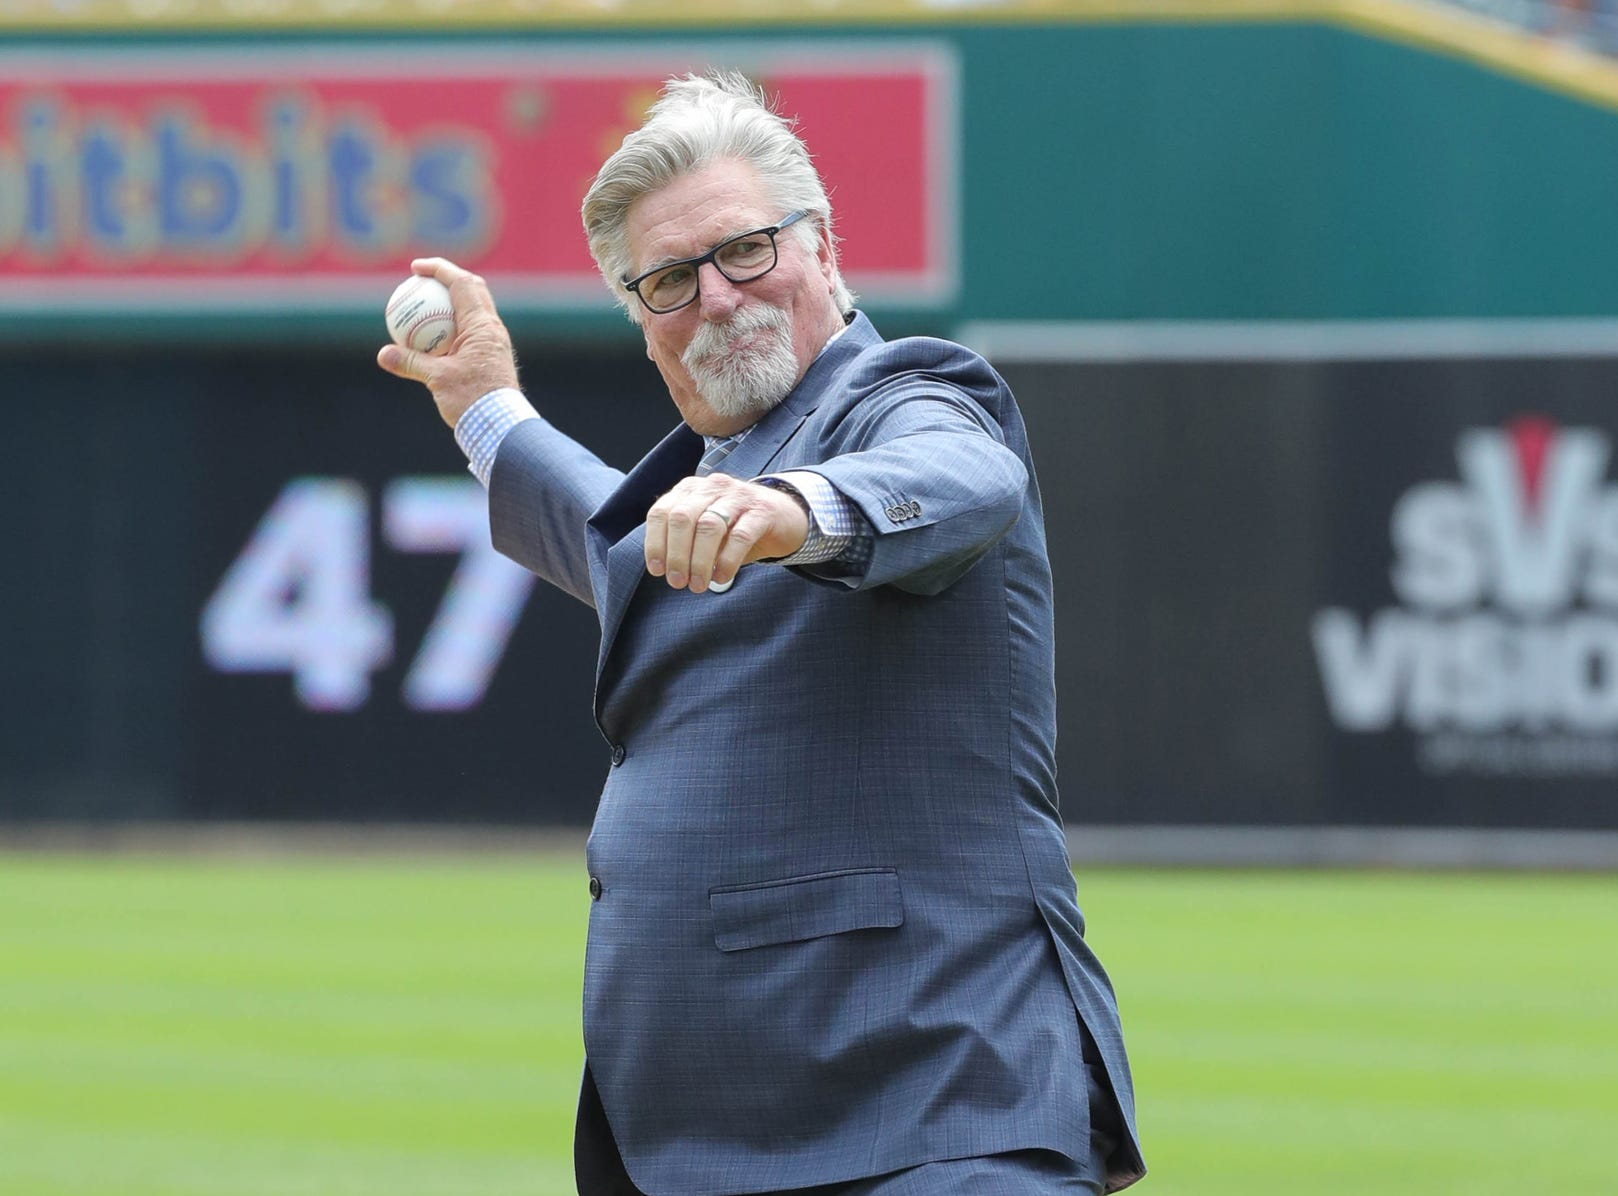 Detroit Tigers Hall of Fame pitcher Jack Morris throws a ceremonial pitch to teammate Lance Parrish before the start of the Tigers game against Minnesota on Sunday, August 12, 2018, at Comerica Park in Detroit.